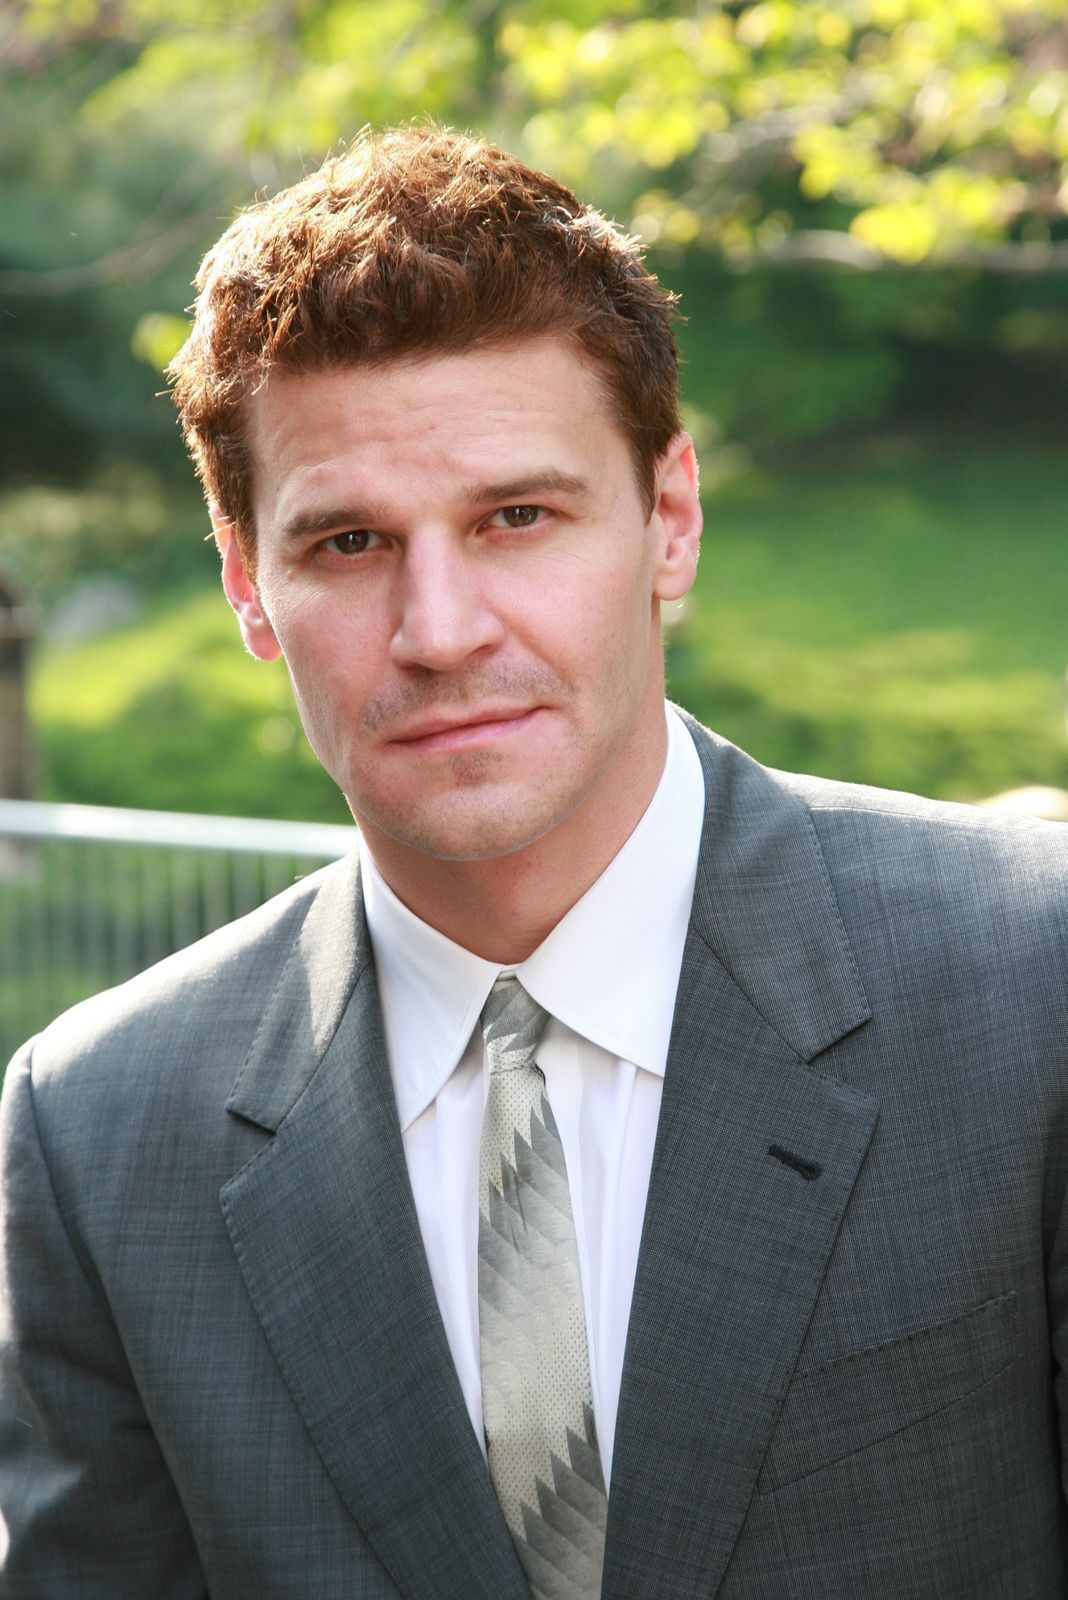 david boreanaz angeldavid boreanaz 2016, david boreanaz gif, david boreanaz bones, david boreanaz young, david boreanaz tattoo, david boreanaz angel, david boreanaz filmography, david boreanaz news, david boreanaz official instagram, david boreanaz dancing, david boreanaz nathan fillion, david boreanaz wikipedia, david boreanaz son, david boreanaz videos youtube, david boreanaz home address, david boreanaz vk, david boreanaz john cena, david boreanaz new show, david boreanaz instagram, david boreanaz фильмография